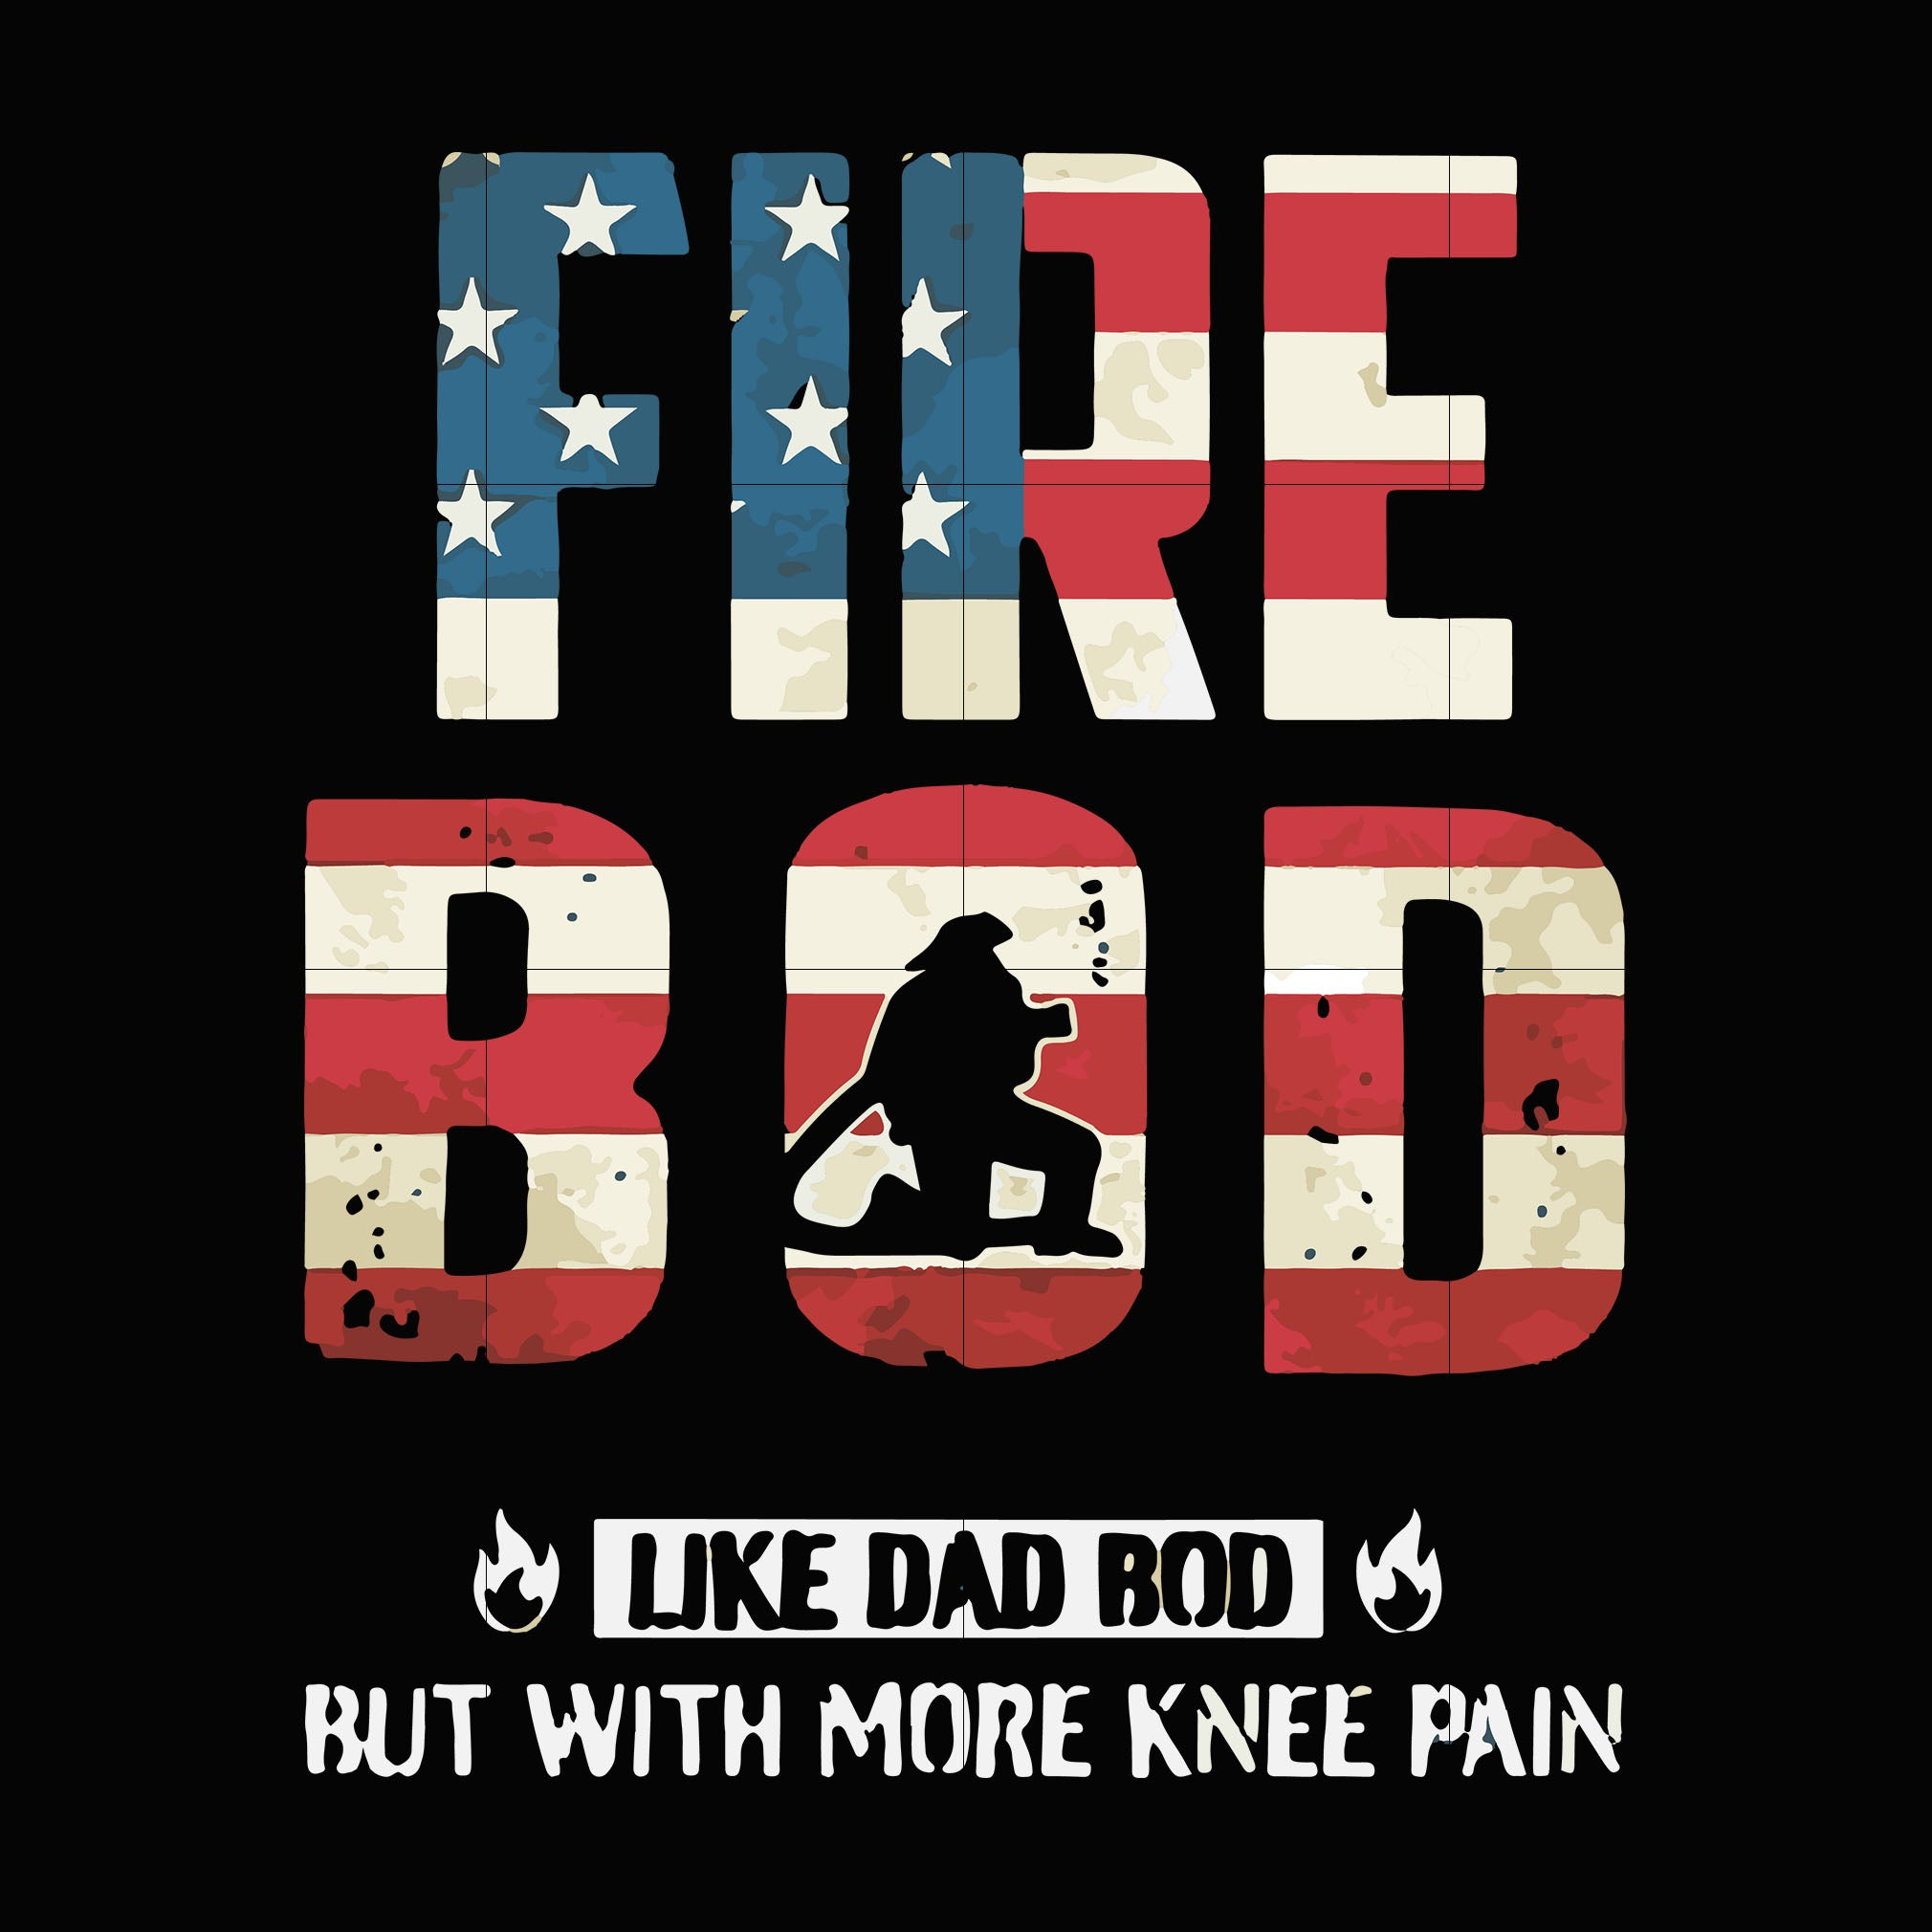 Fire bod like dad bod but with more knee pain svg,dxf,eps,png digital file